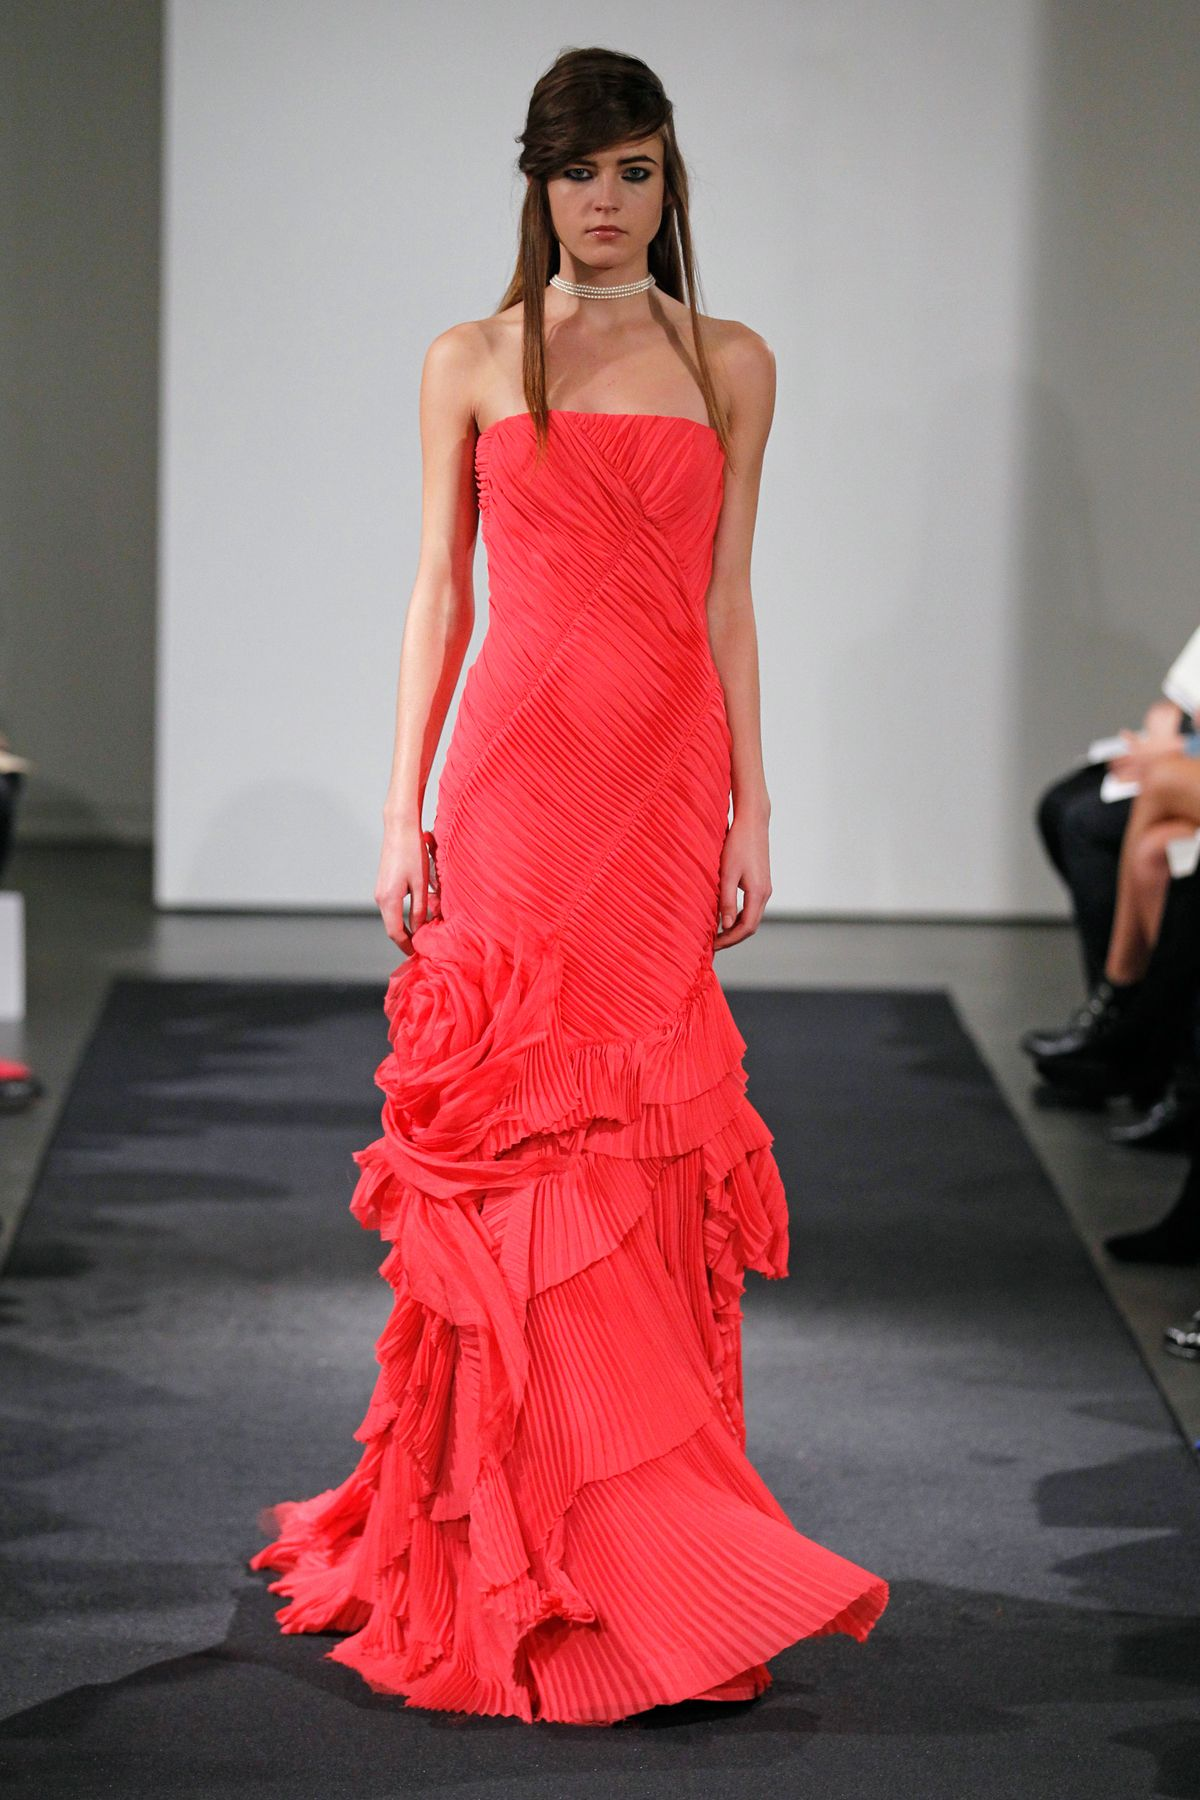 Vera wang red wedding dress  Look   Coral strapless chiffon mermaid gown with alternating